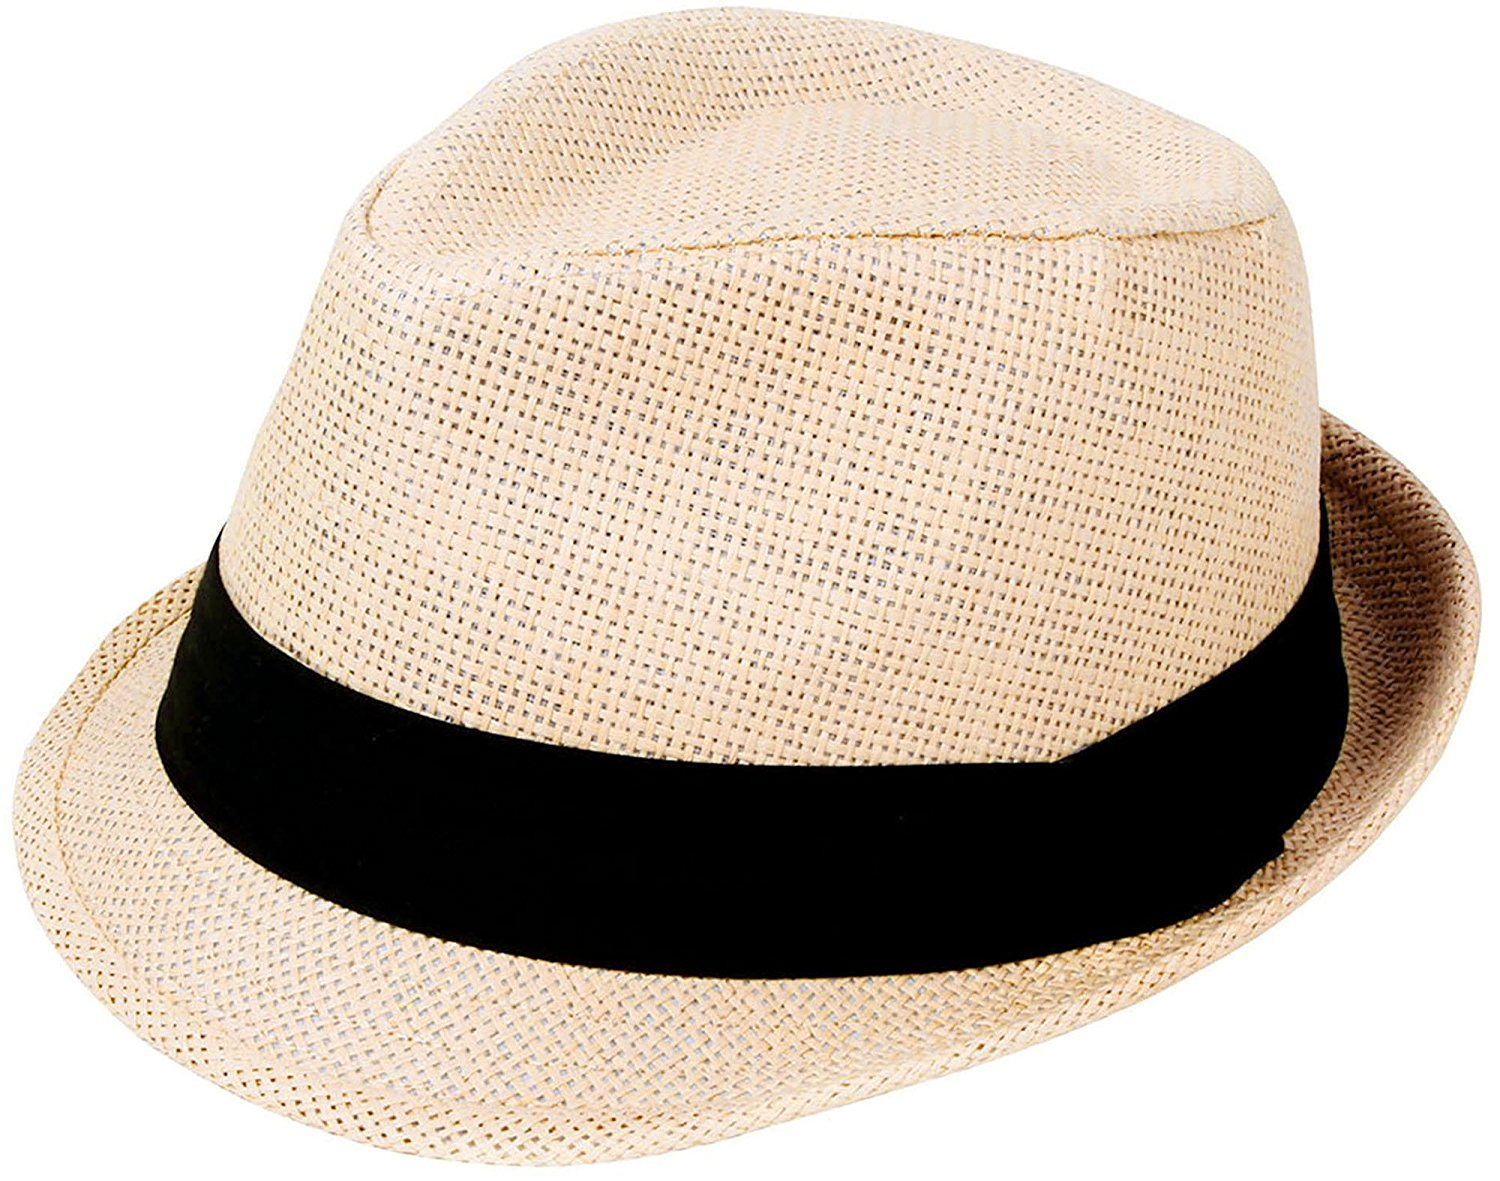 851cc41f0aa Get Quotations · Simplicity Unisex Summer Cool Woven Straw Fedora Hat    Stylish Hat Band